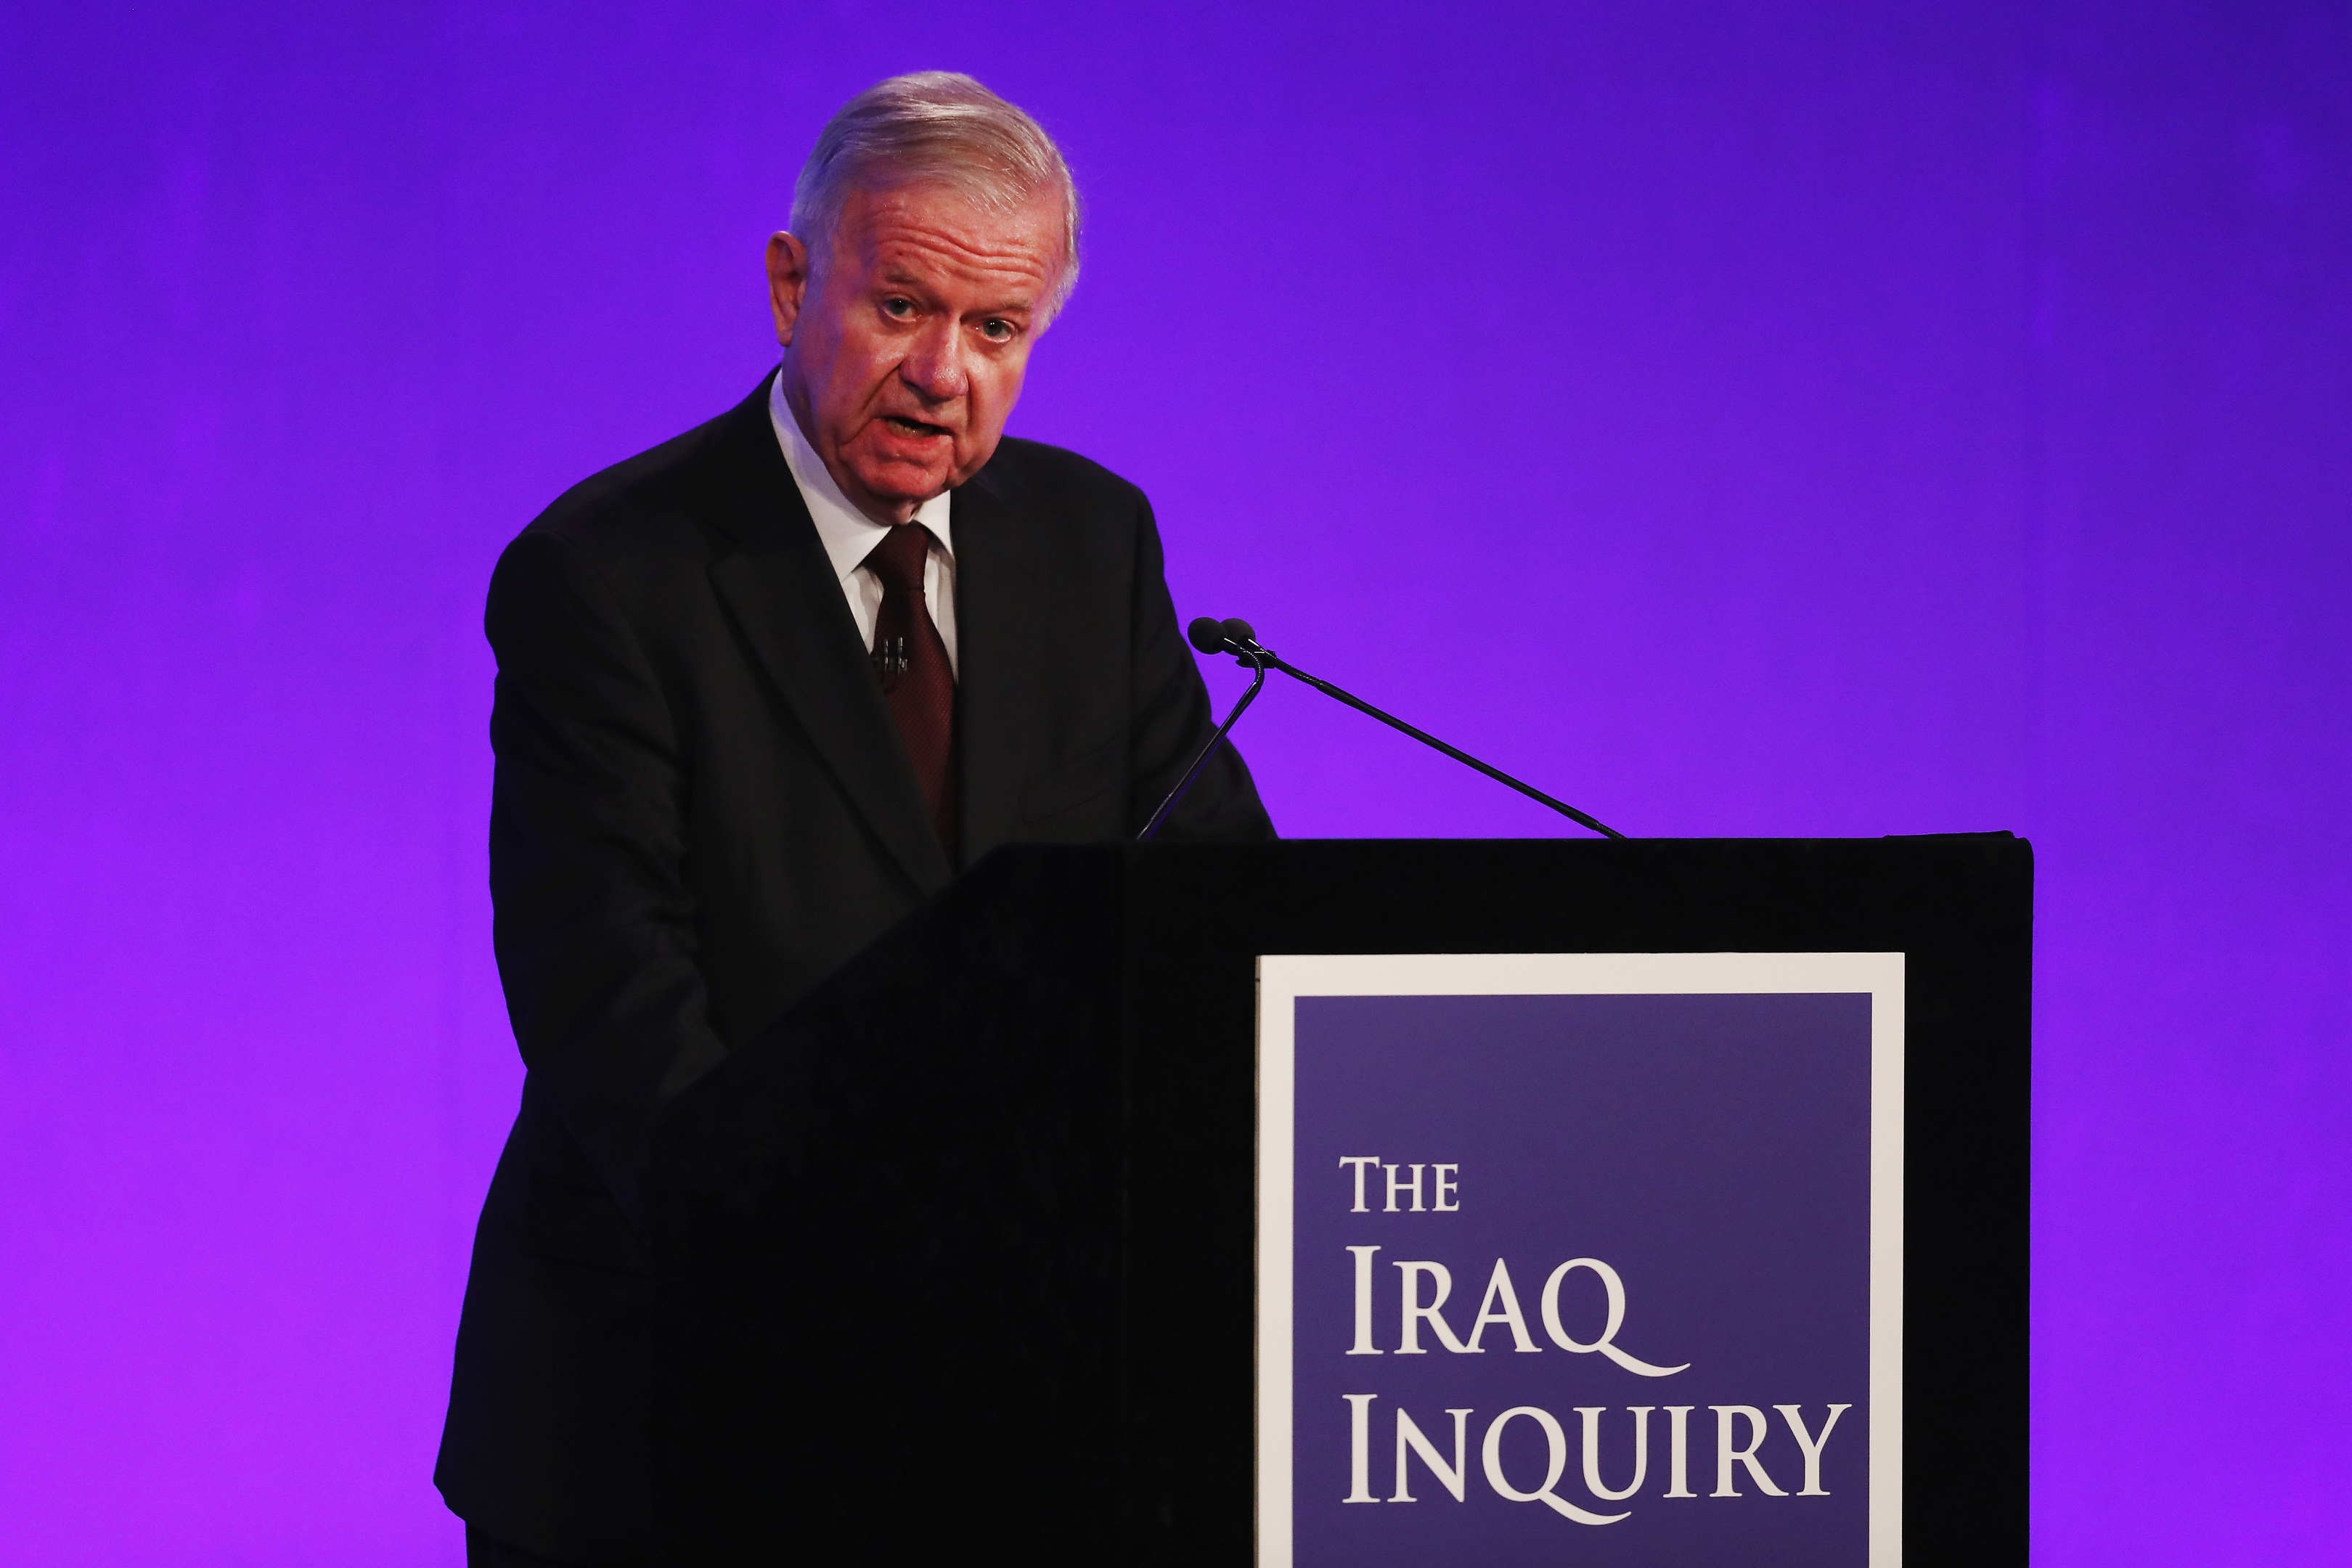 Sir John Chilcot presents the Iraq Inquiry Report (Dan Kitwood/Getty Images)